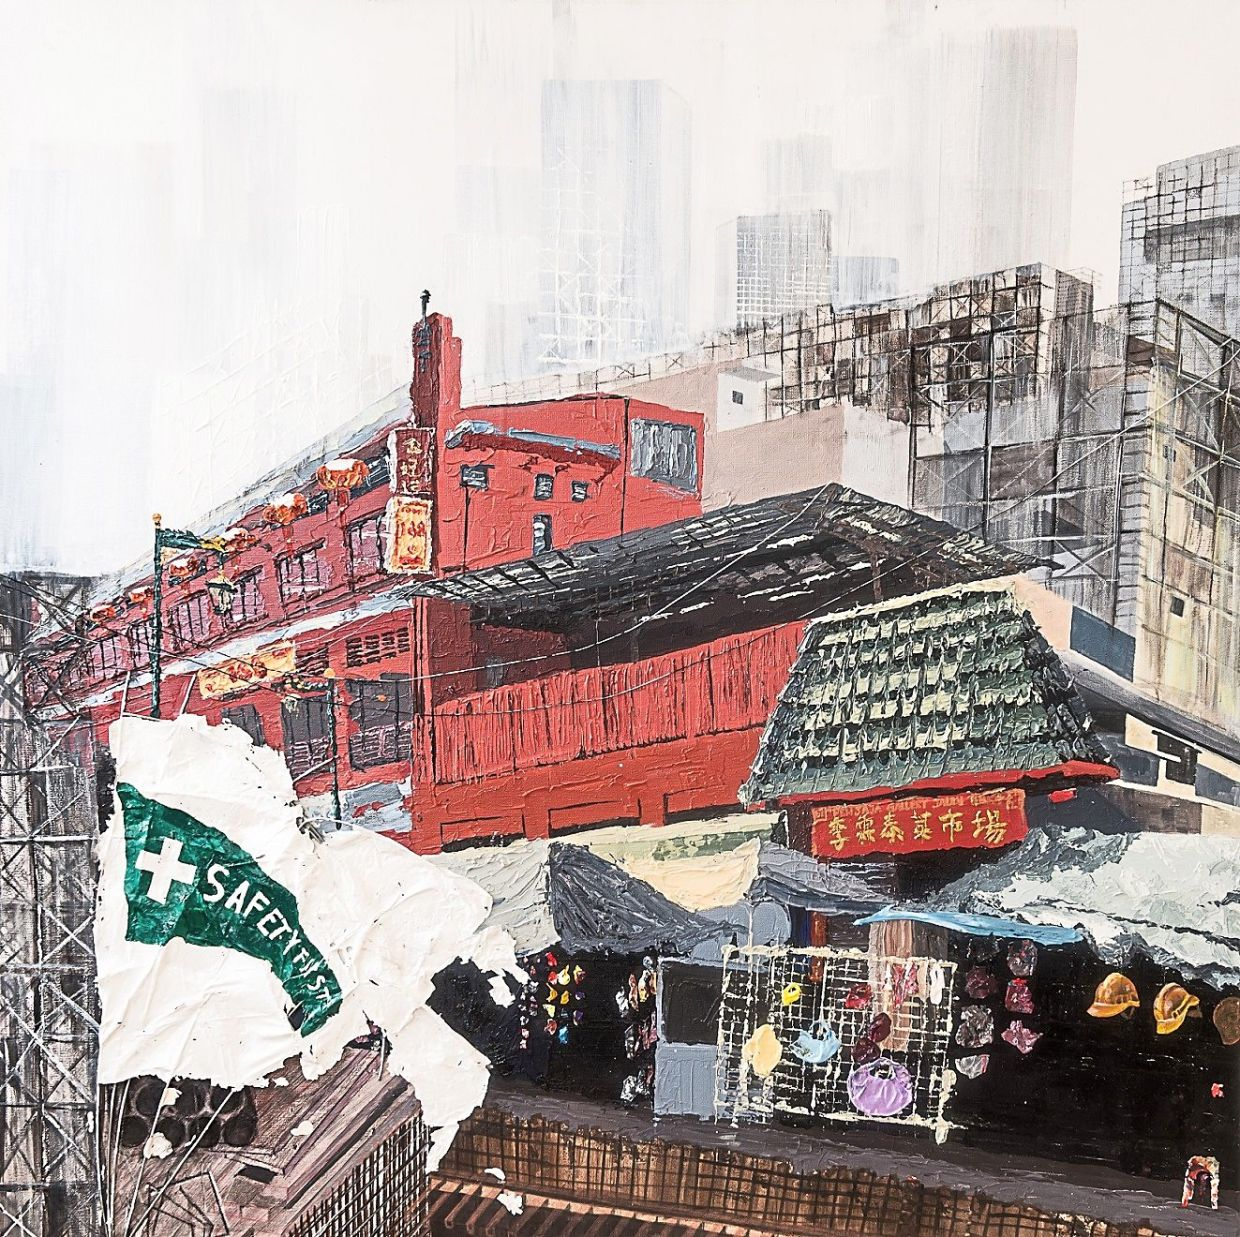 'Welcome to Jalan Tun HS Lee' by Yong Hui Lin won first prize in the mixed media category last year.